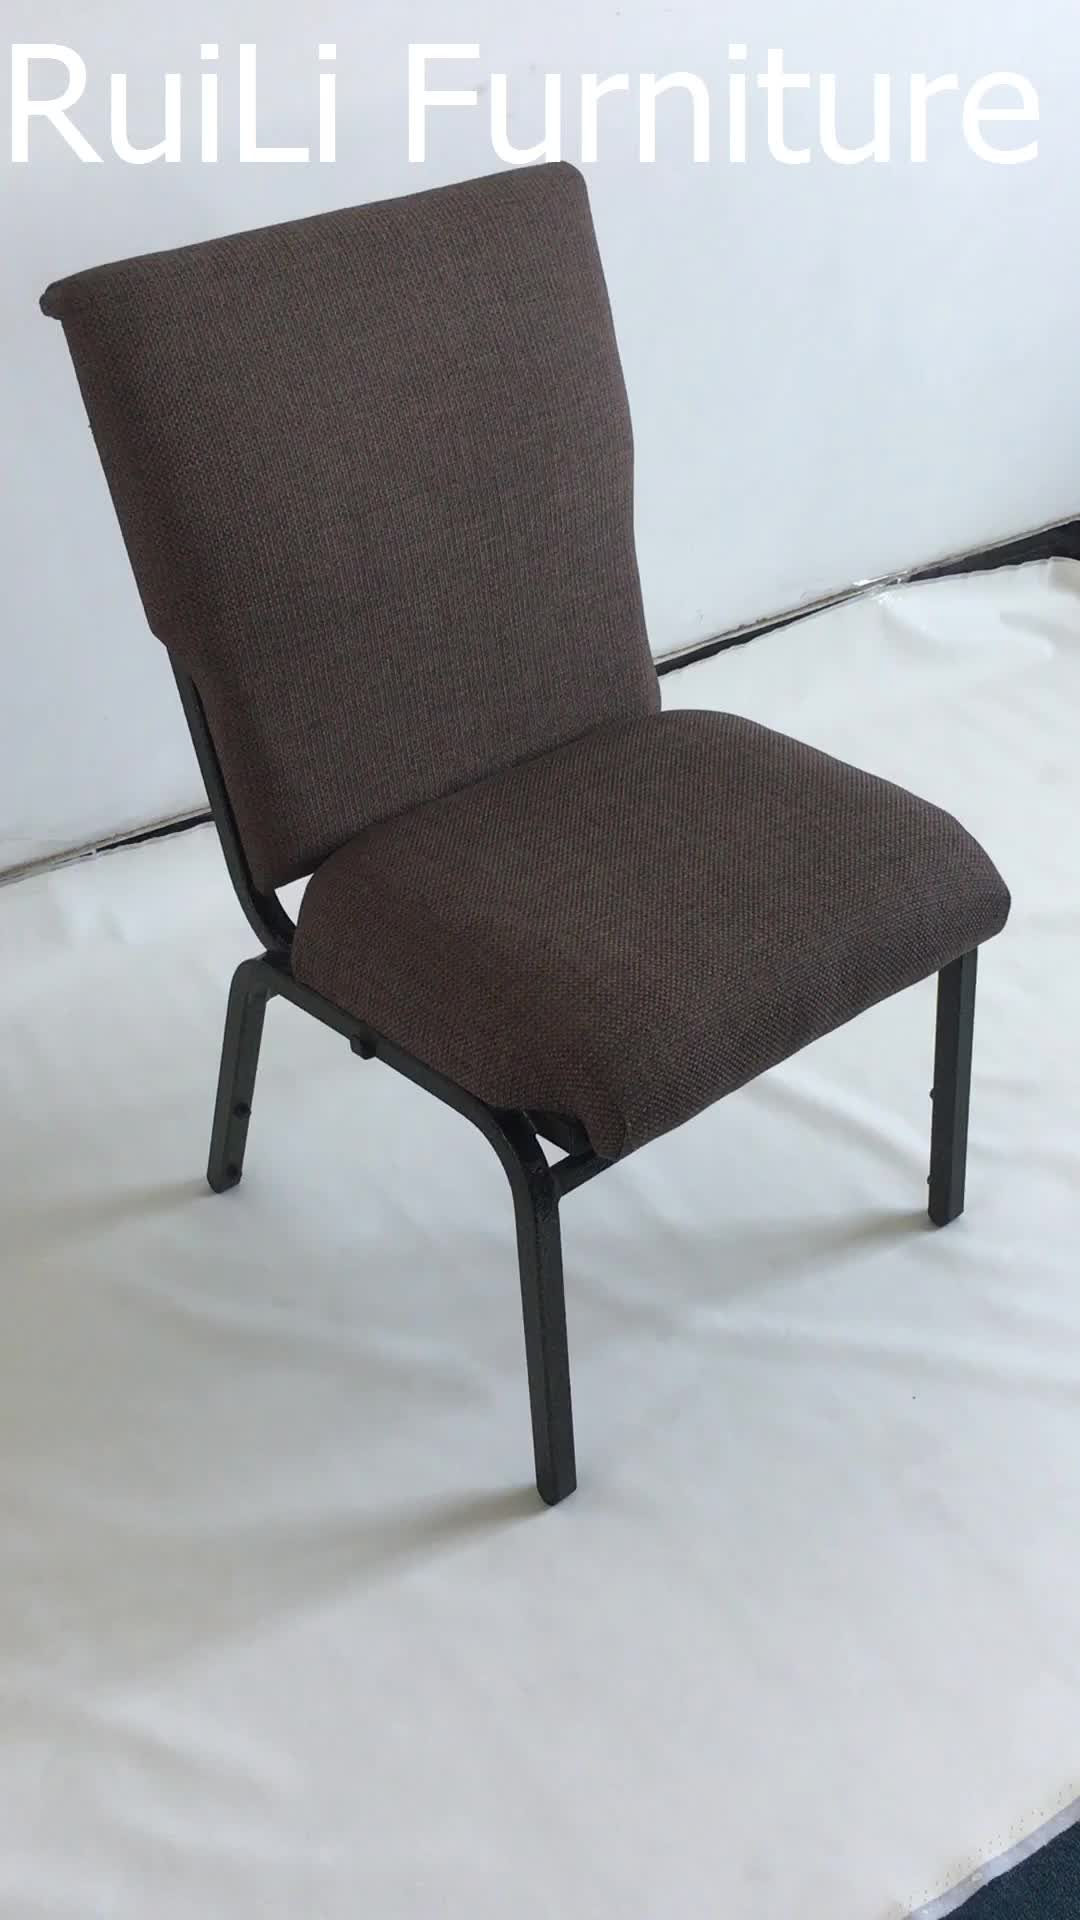 banq covers banquet chair products ivr tablecloths polyester ivory chairs factory